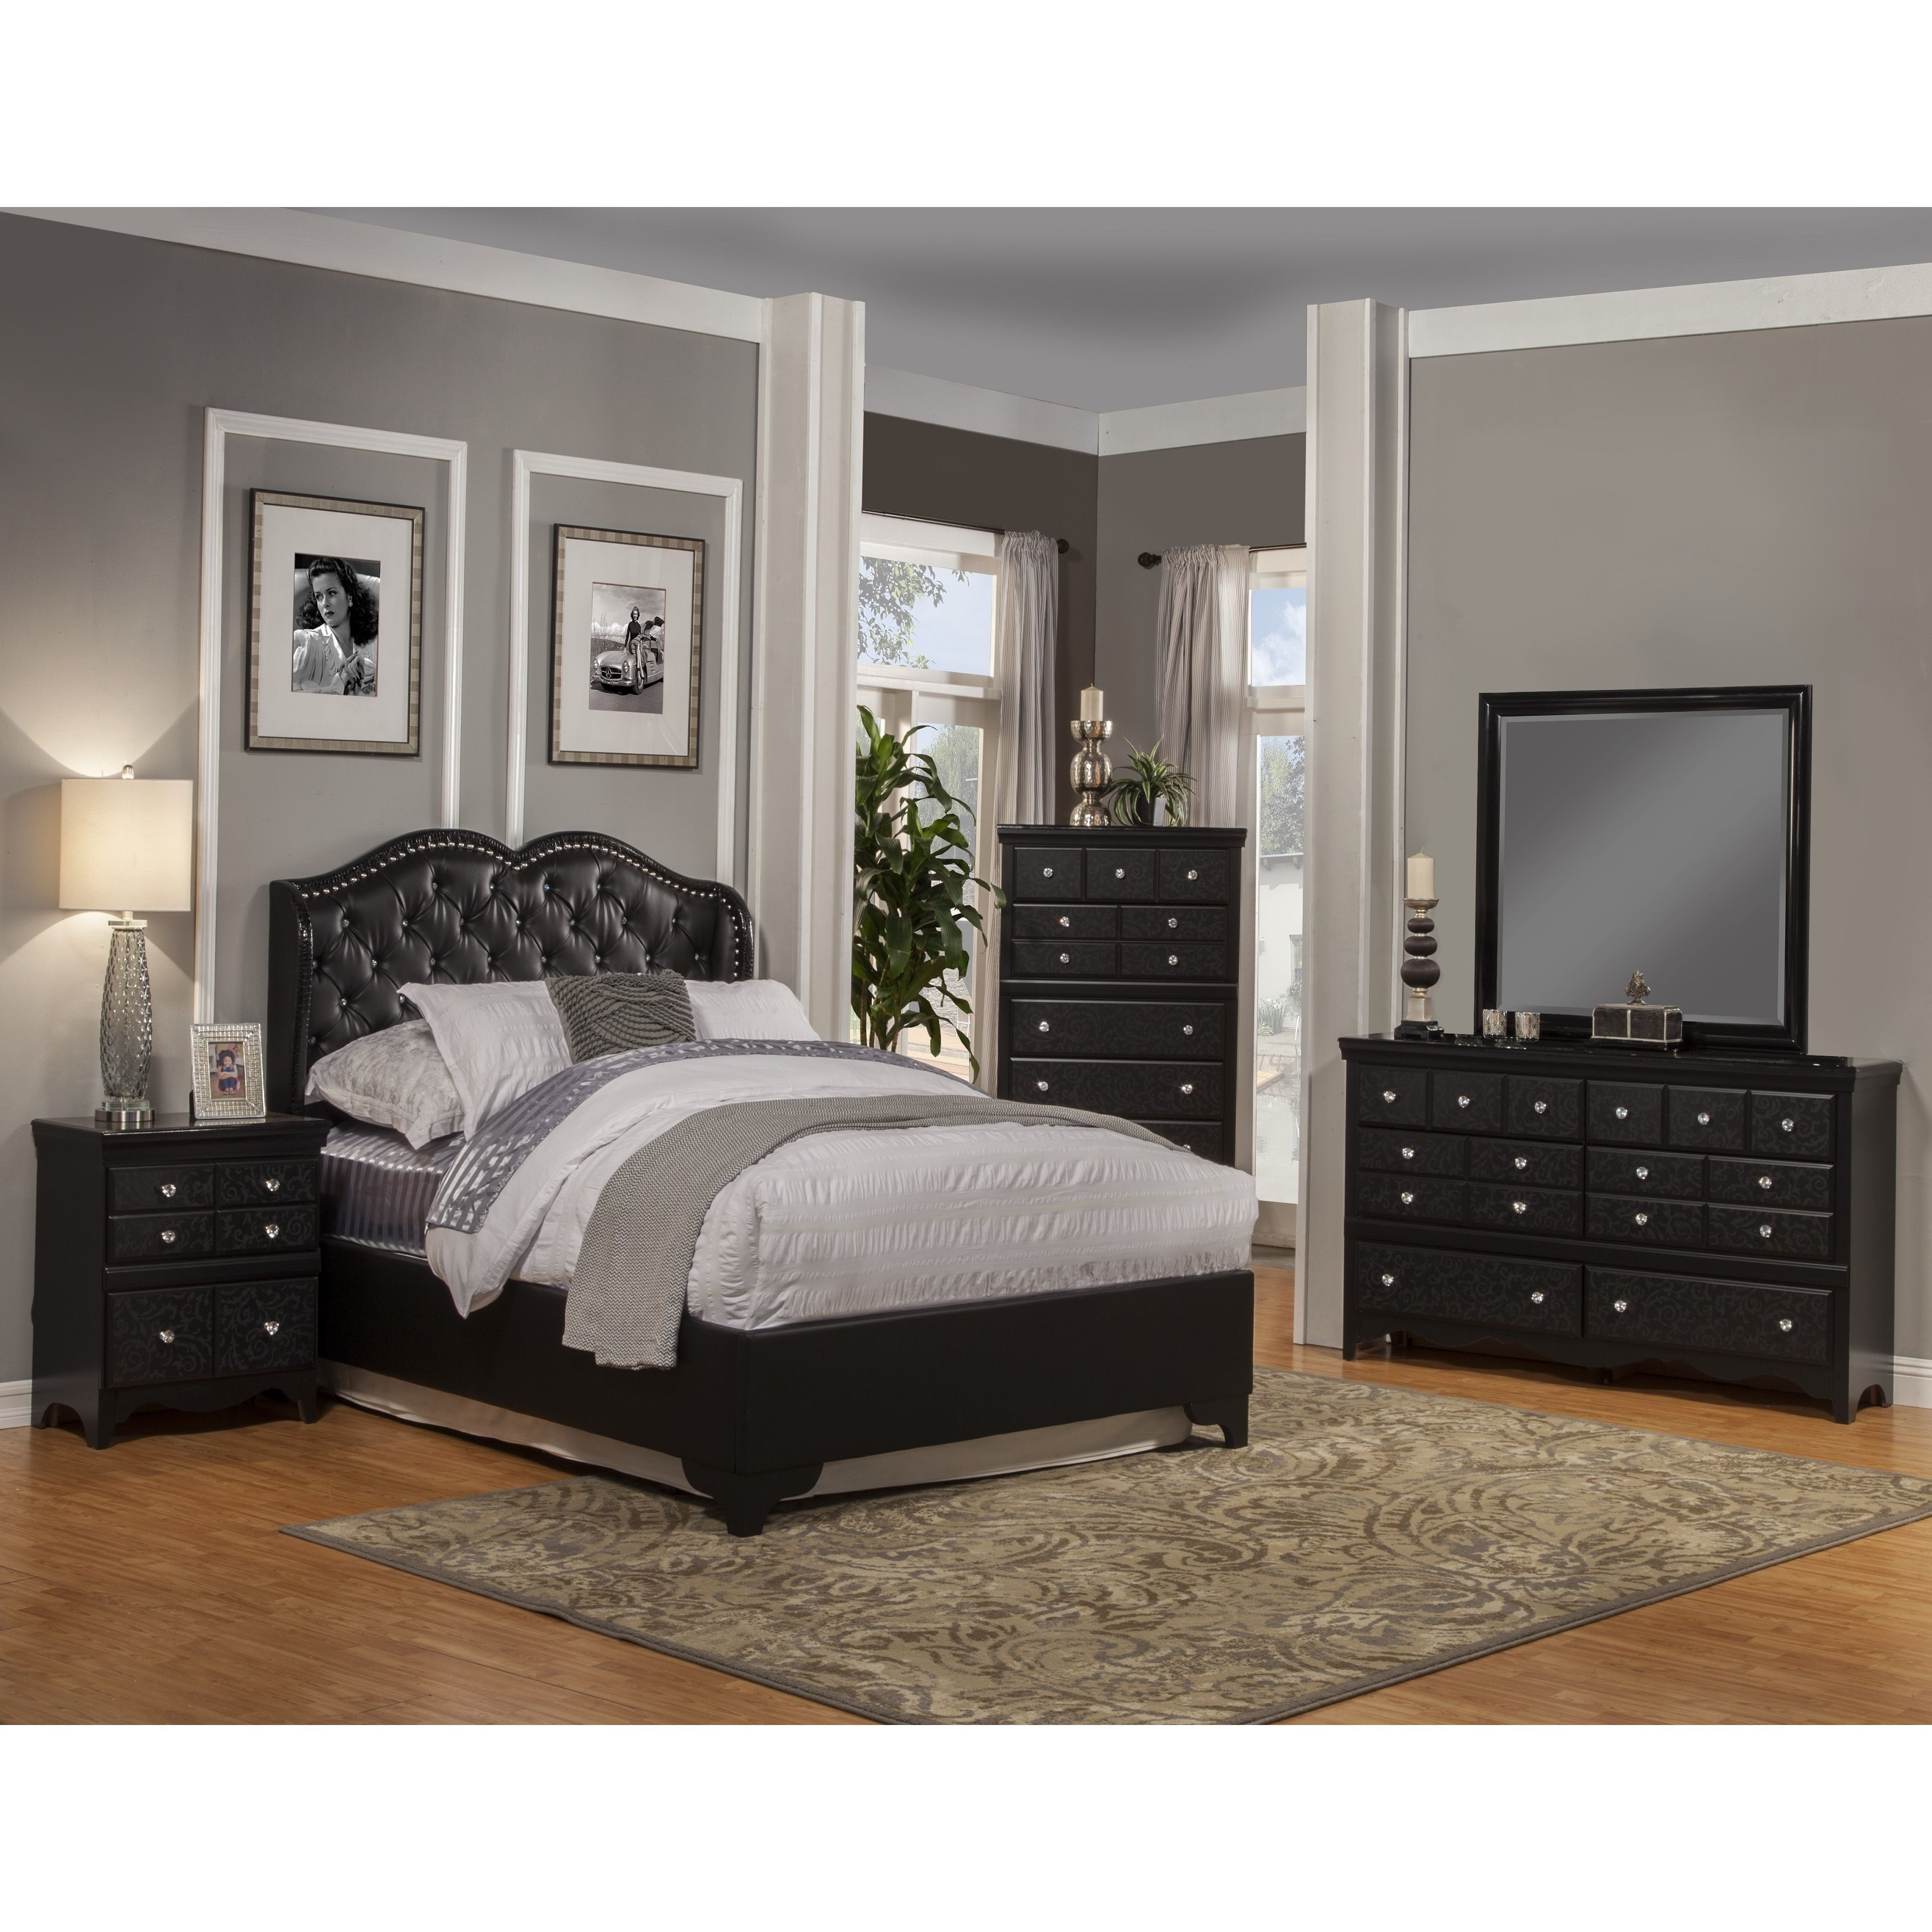 Traditional Furniture Traditional Black Bedroom To Add Elegance To Your Bedroom With The Eva Bedroom Collection This Collection Has Traditional Black Finish Complemented Vine Motif Enhau2026